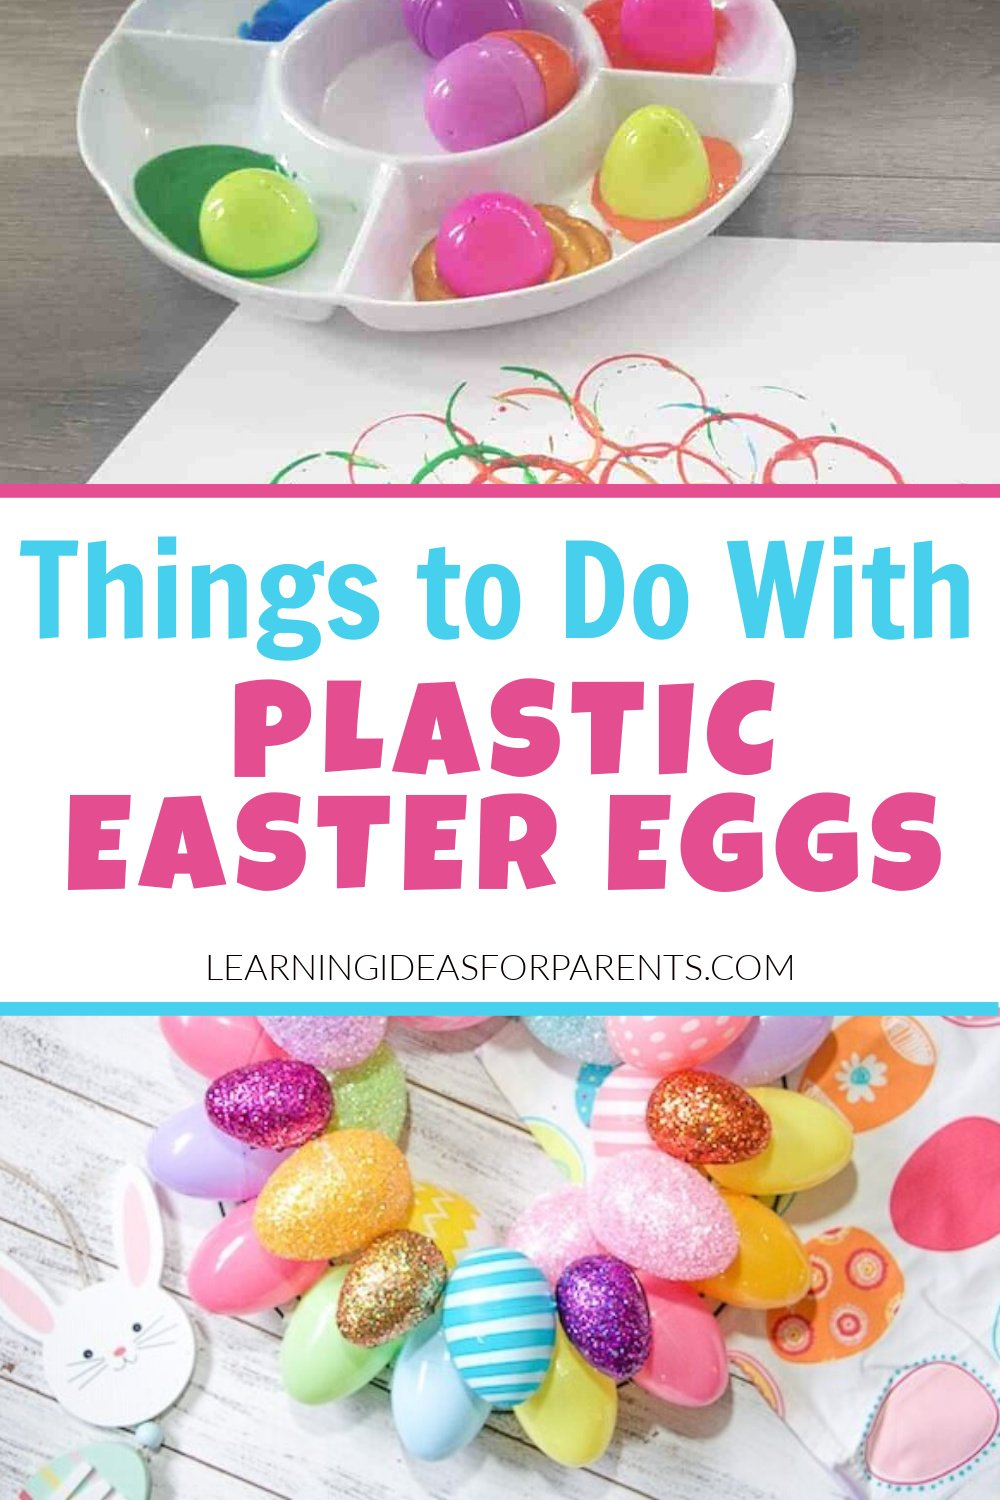 Crafts and learning activities with plastic Easter eggs.